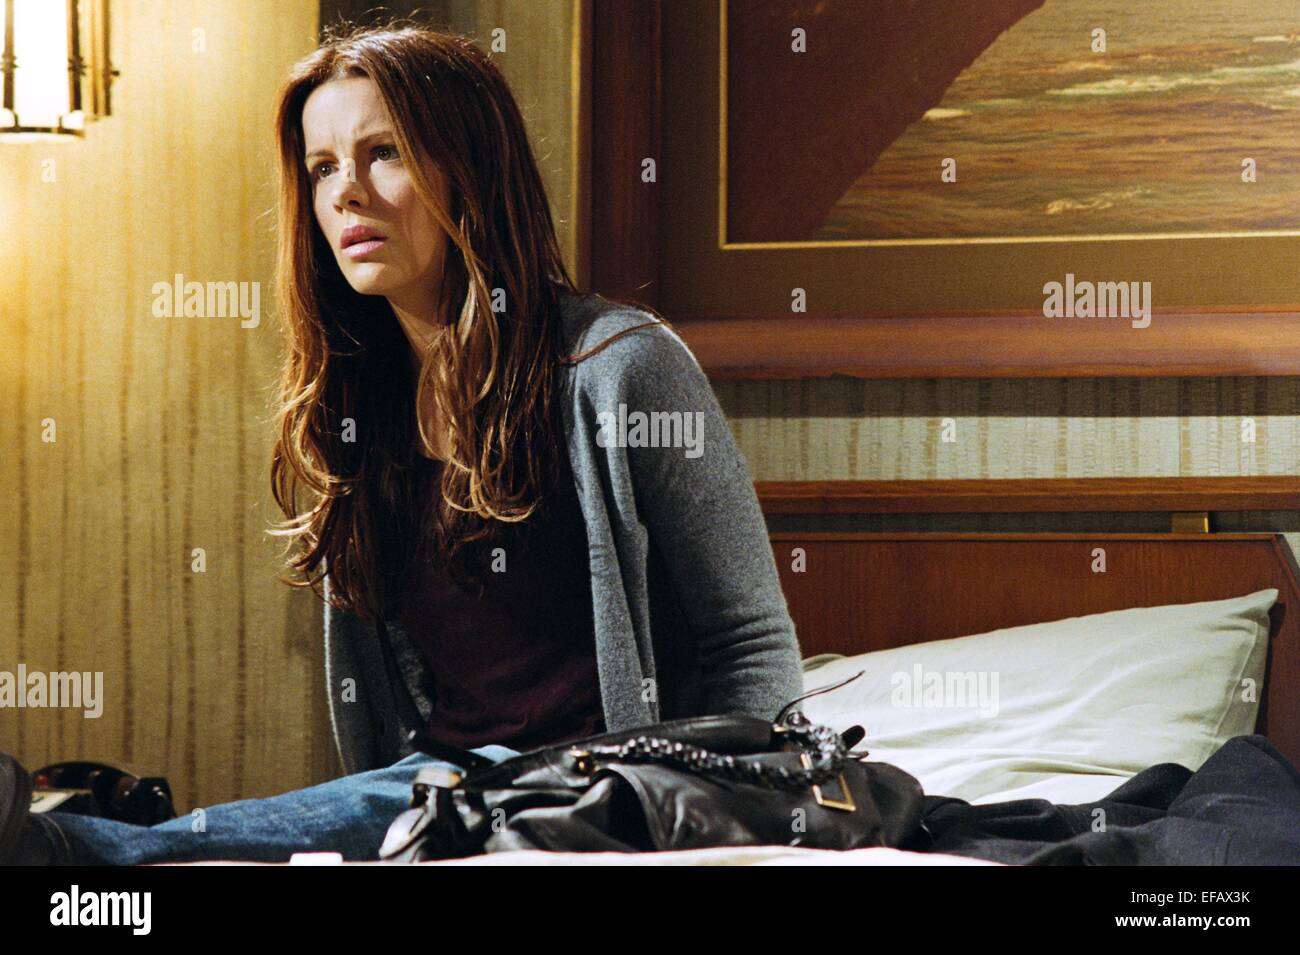 KATE BECKINSALE VACANCY (2007) - Stock Image